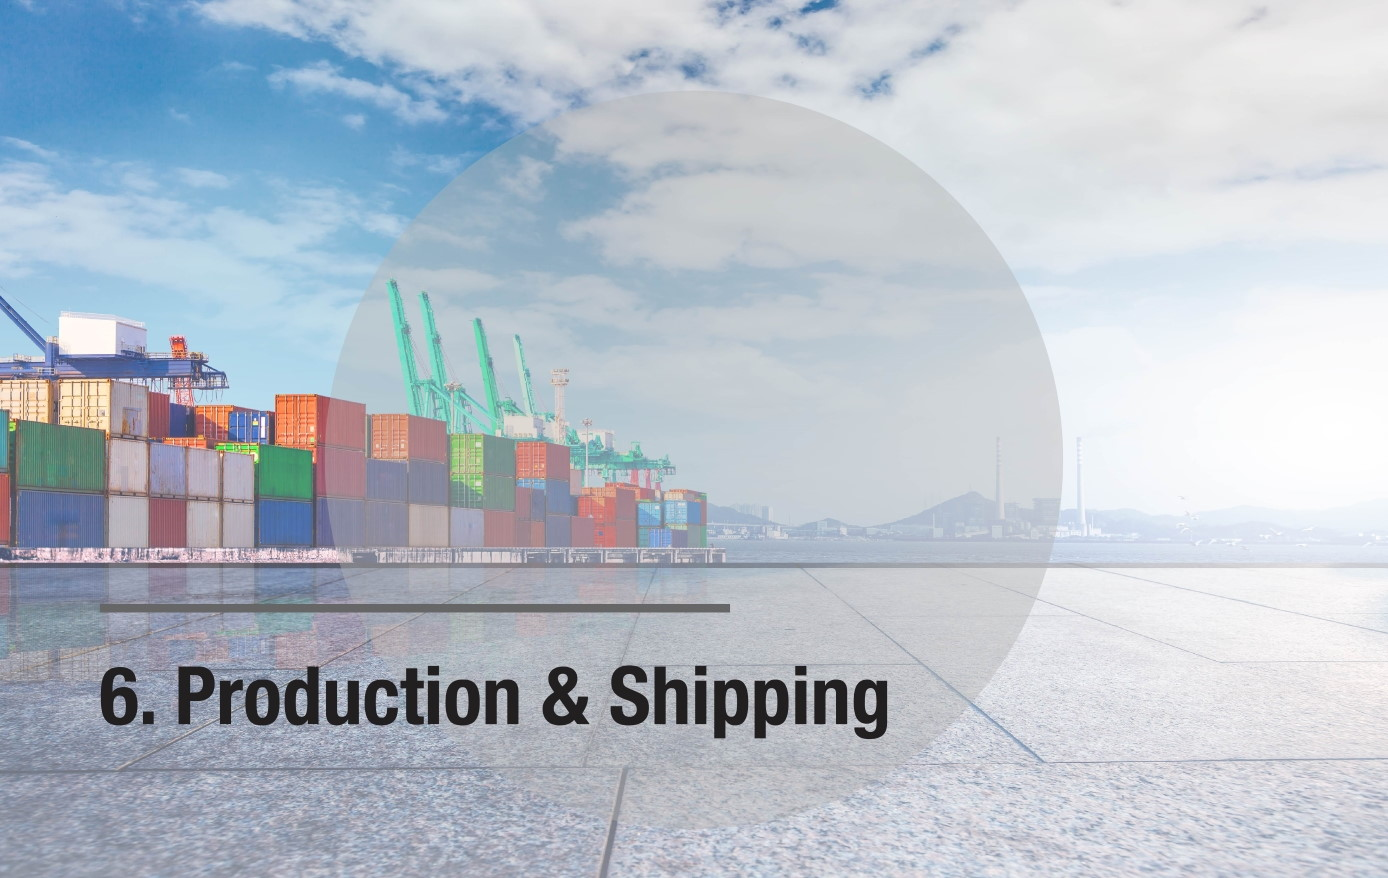 Production & Shipping